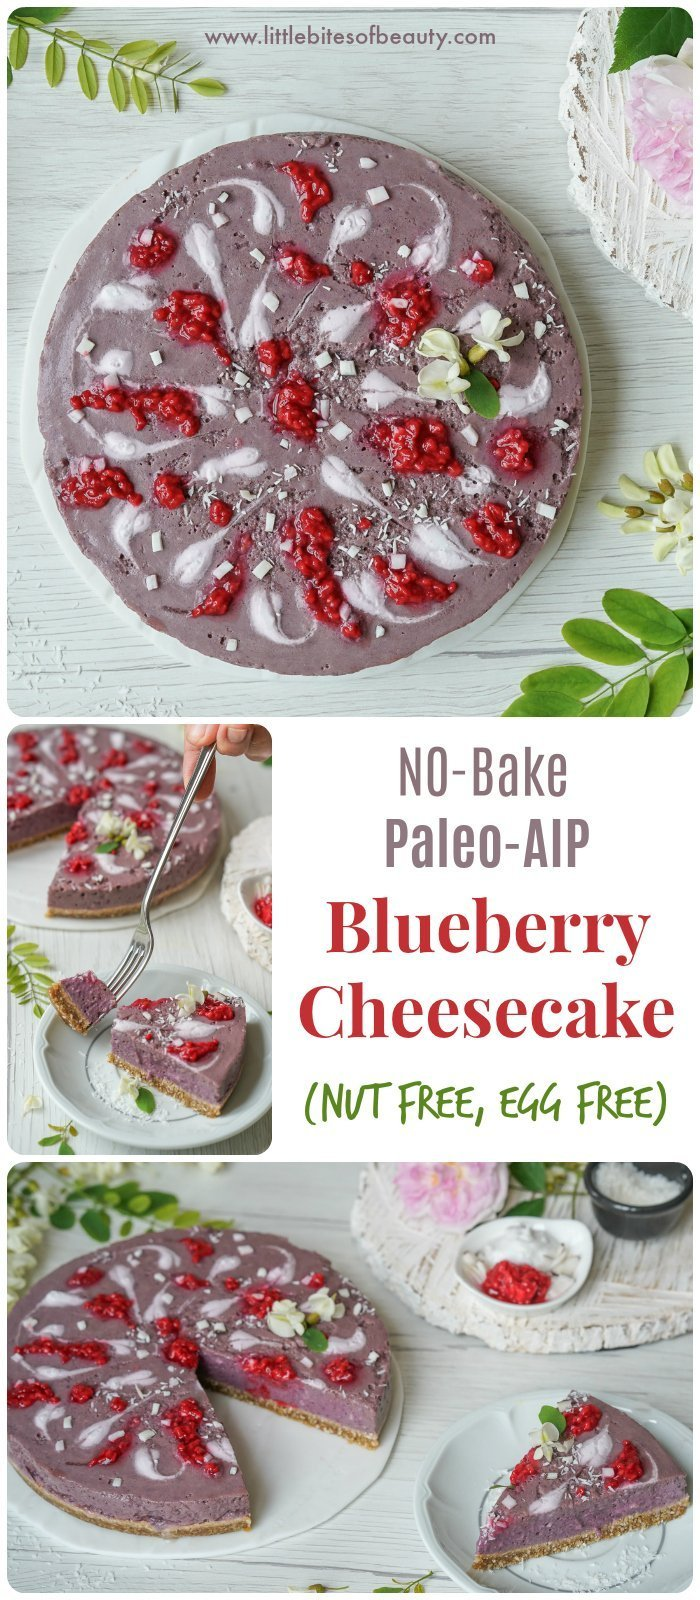 Paleo AIP Blueberry Cheesecake (Nut Free, Egg Free)